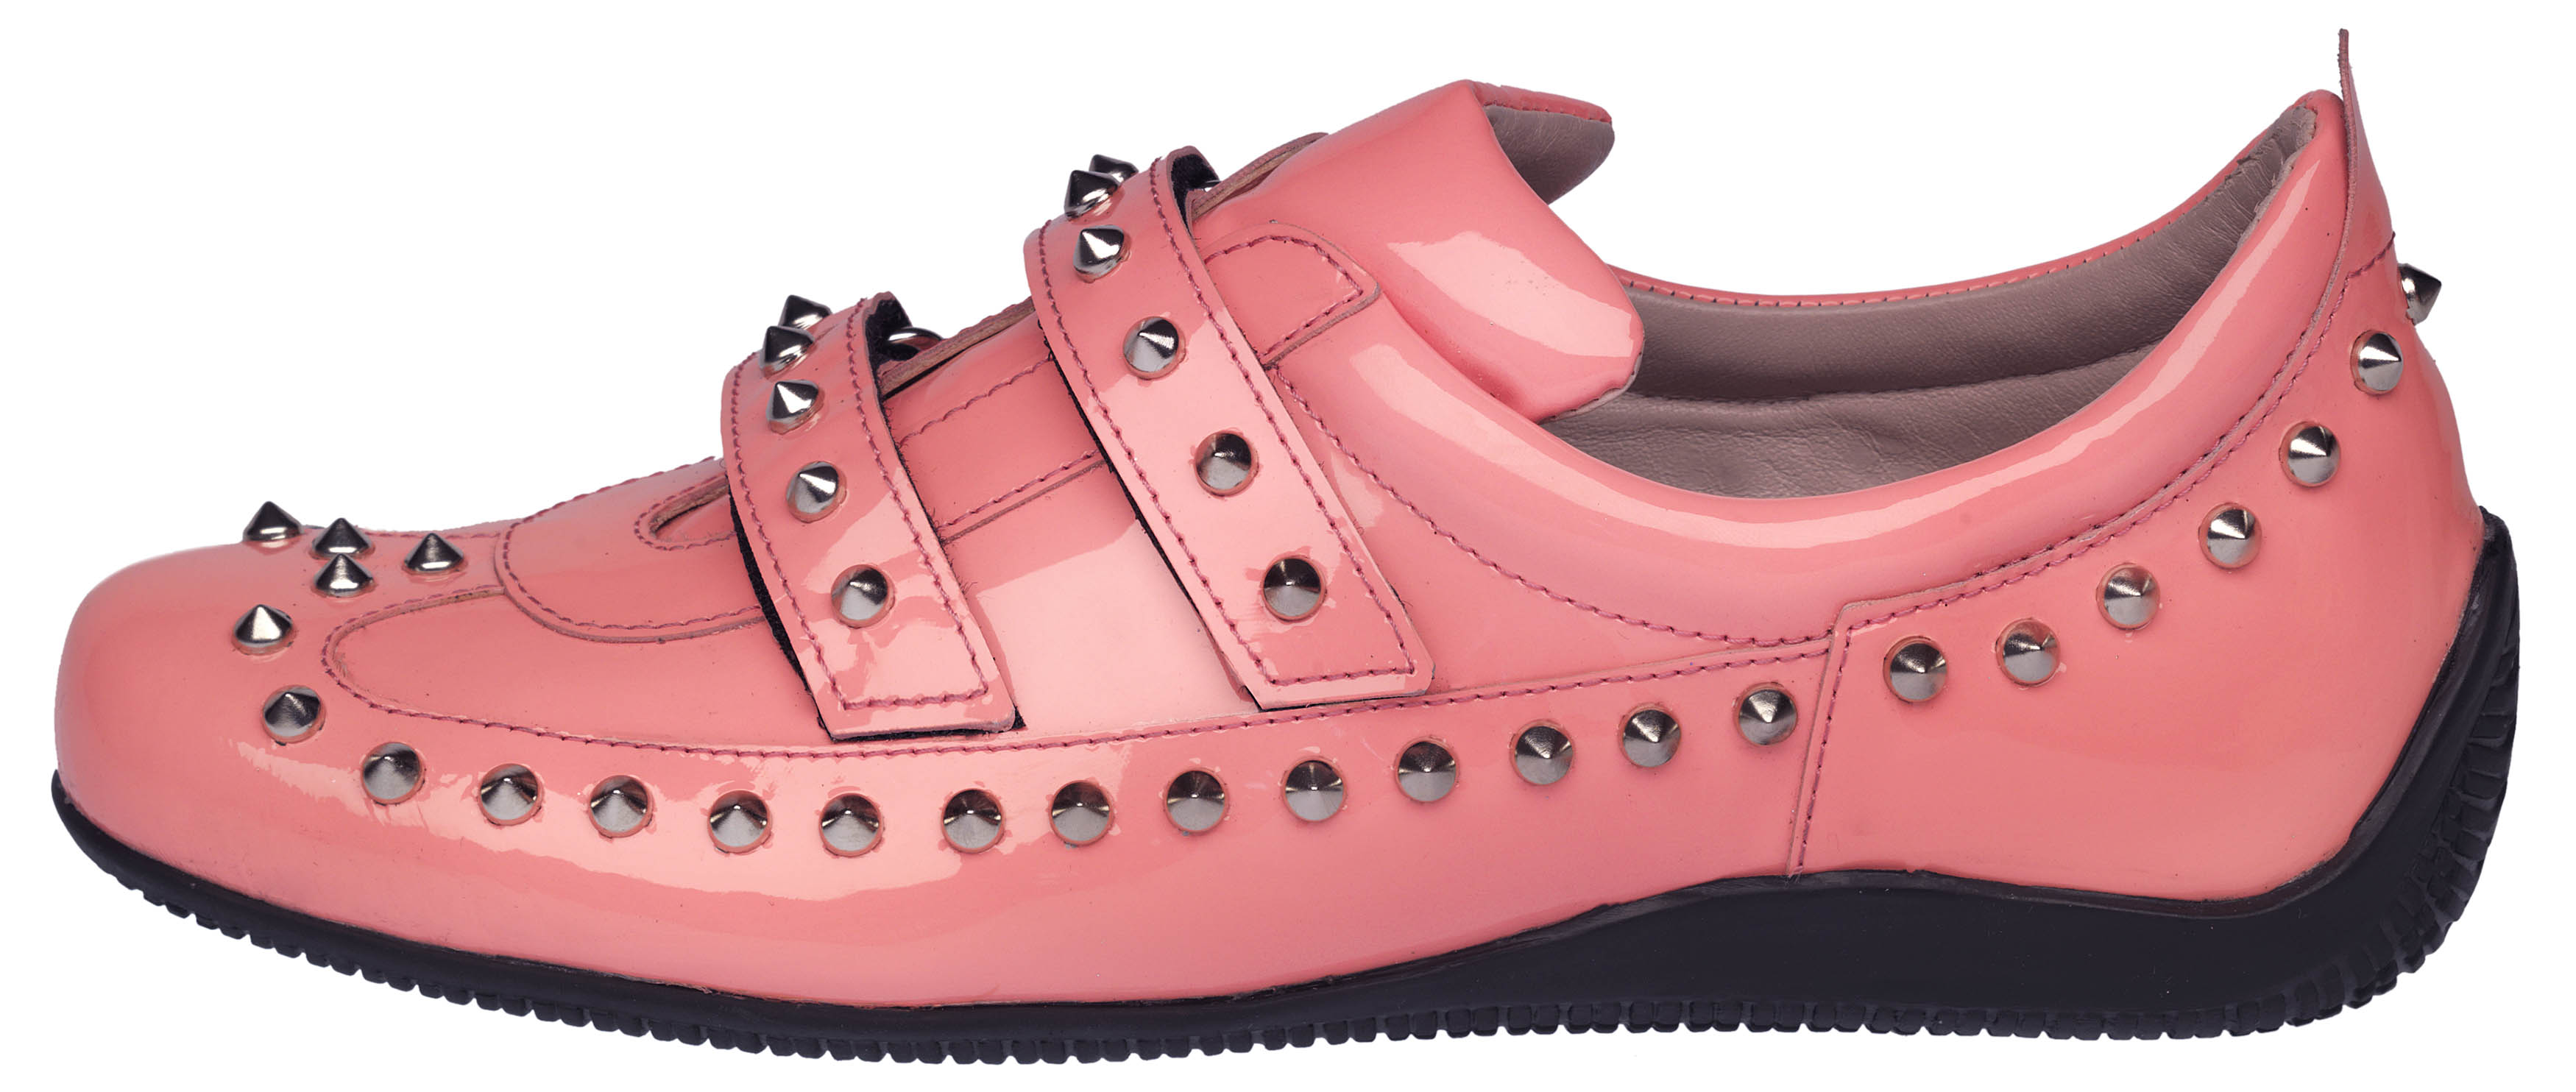 Denise studded pink patent - side